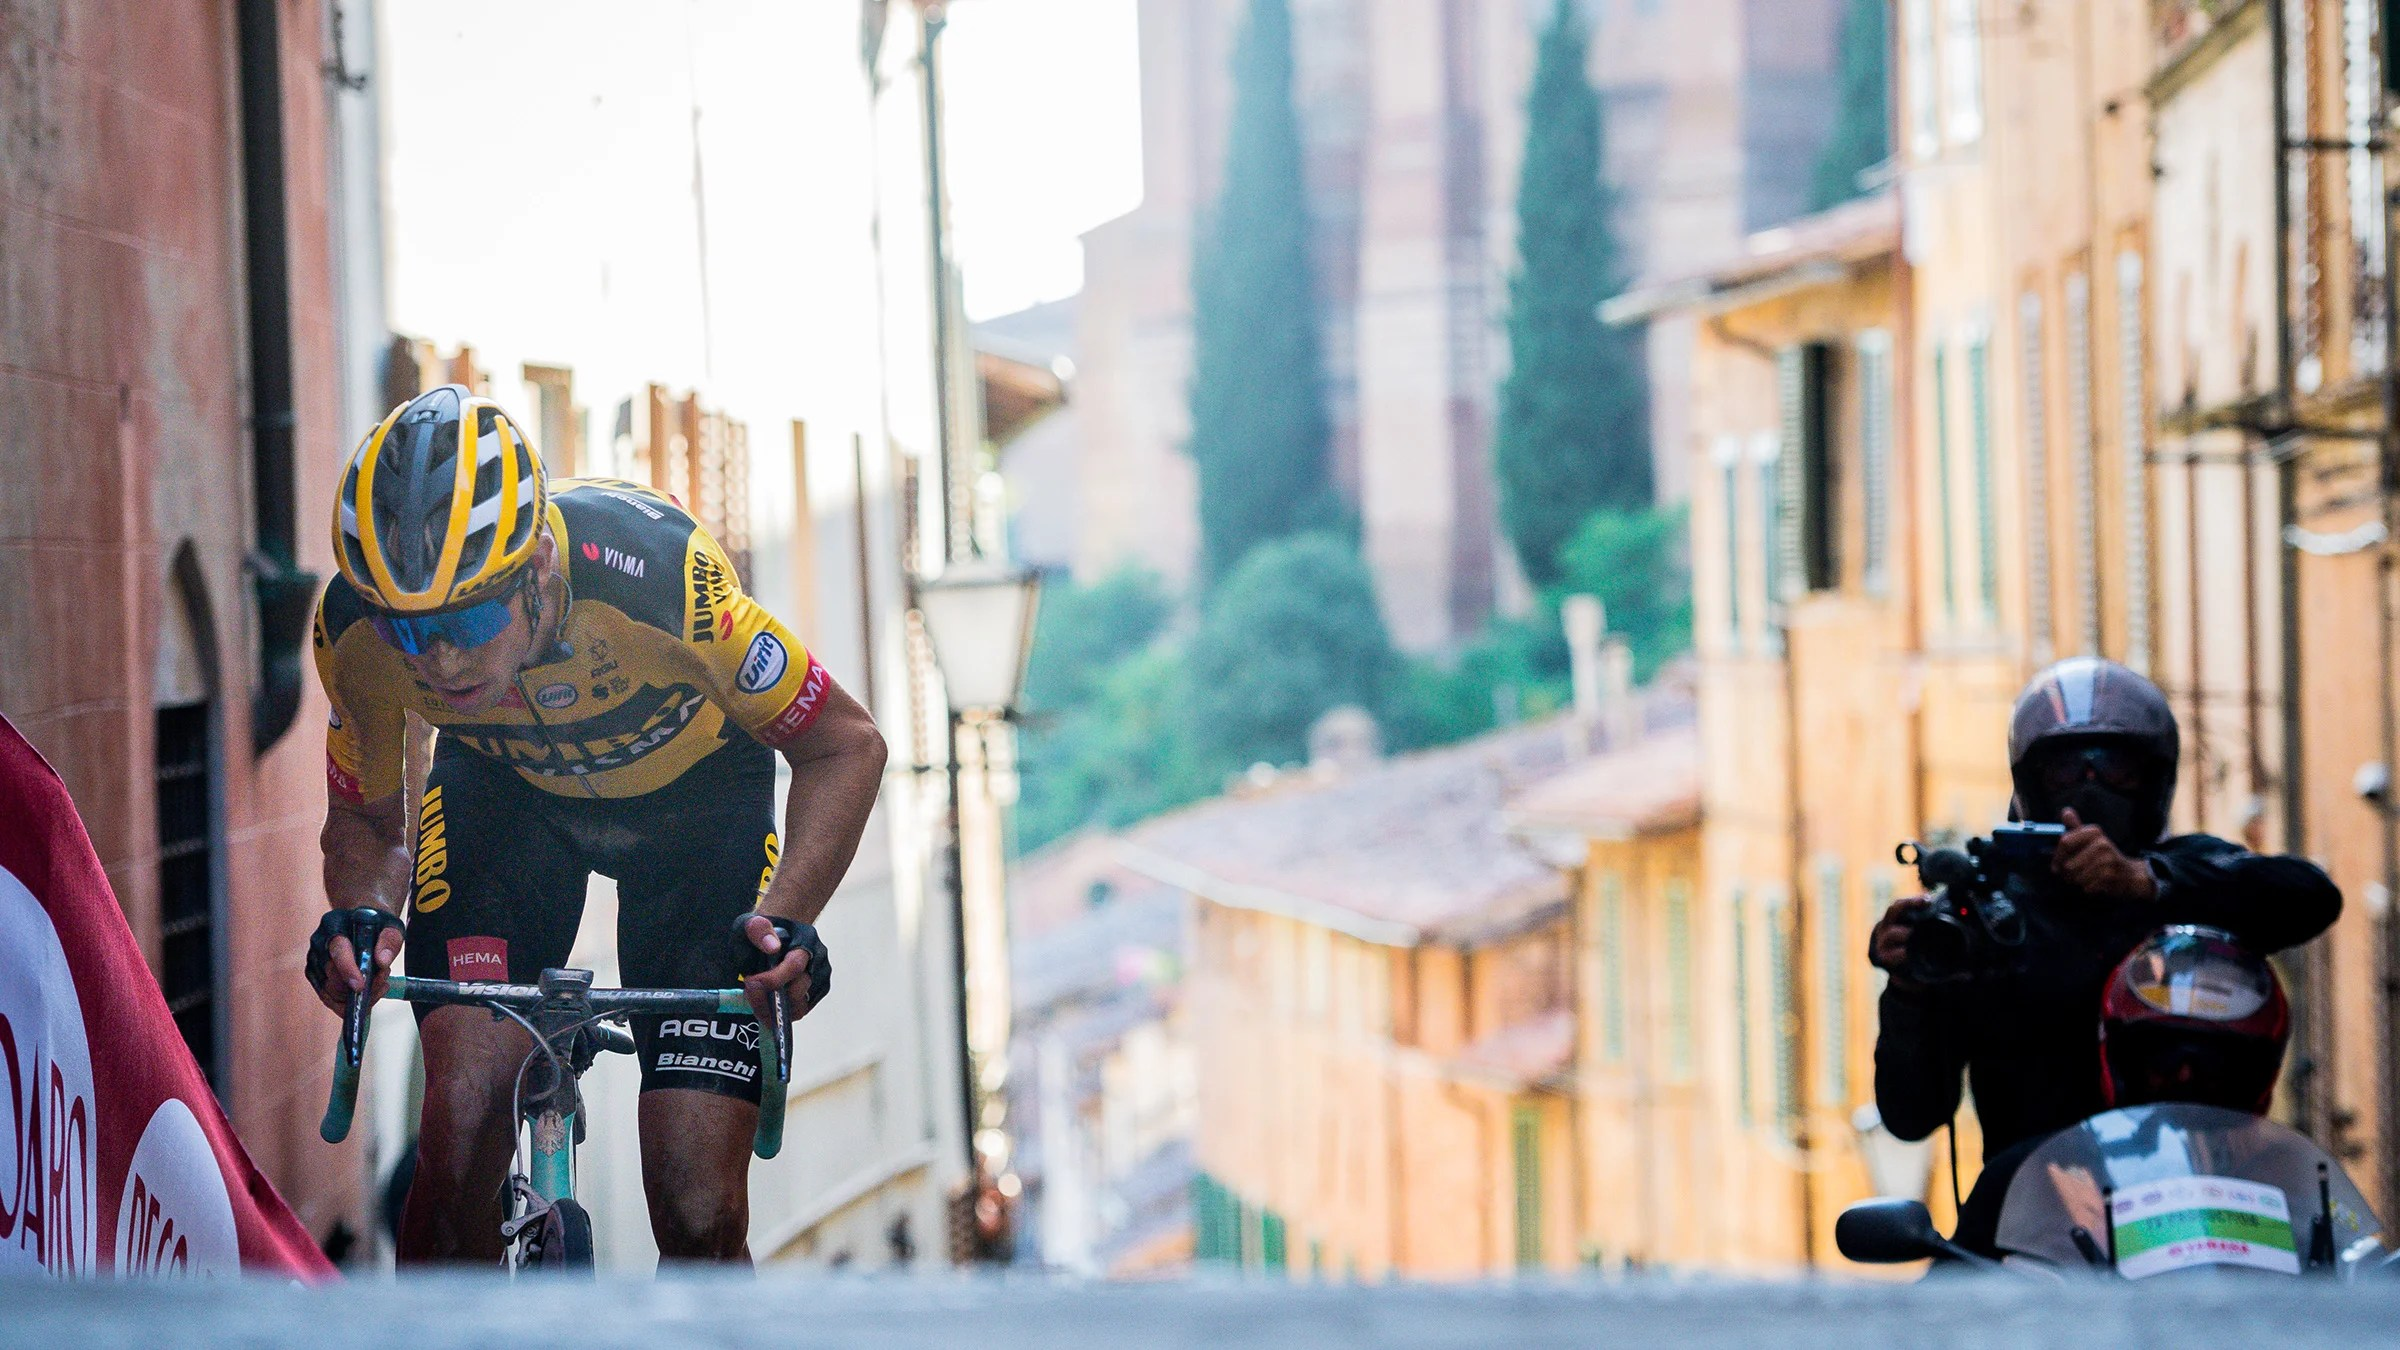 Vn Podcast At Strade Bianche Tdf Stages 11 21 Leah